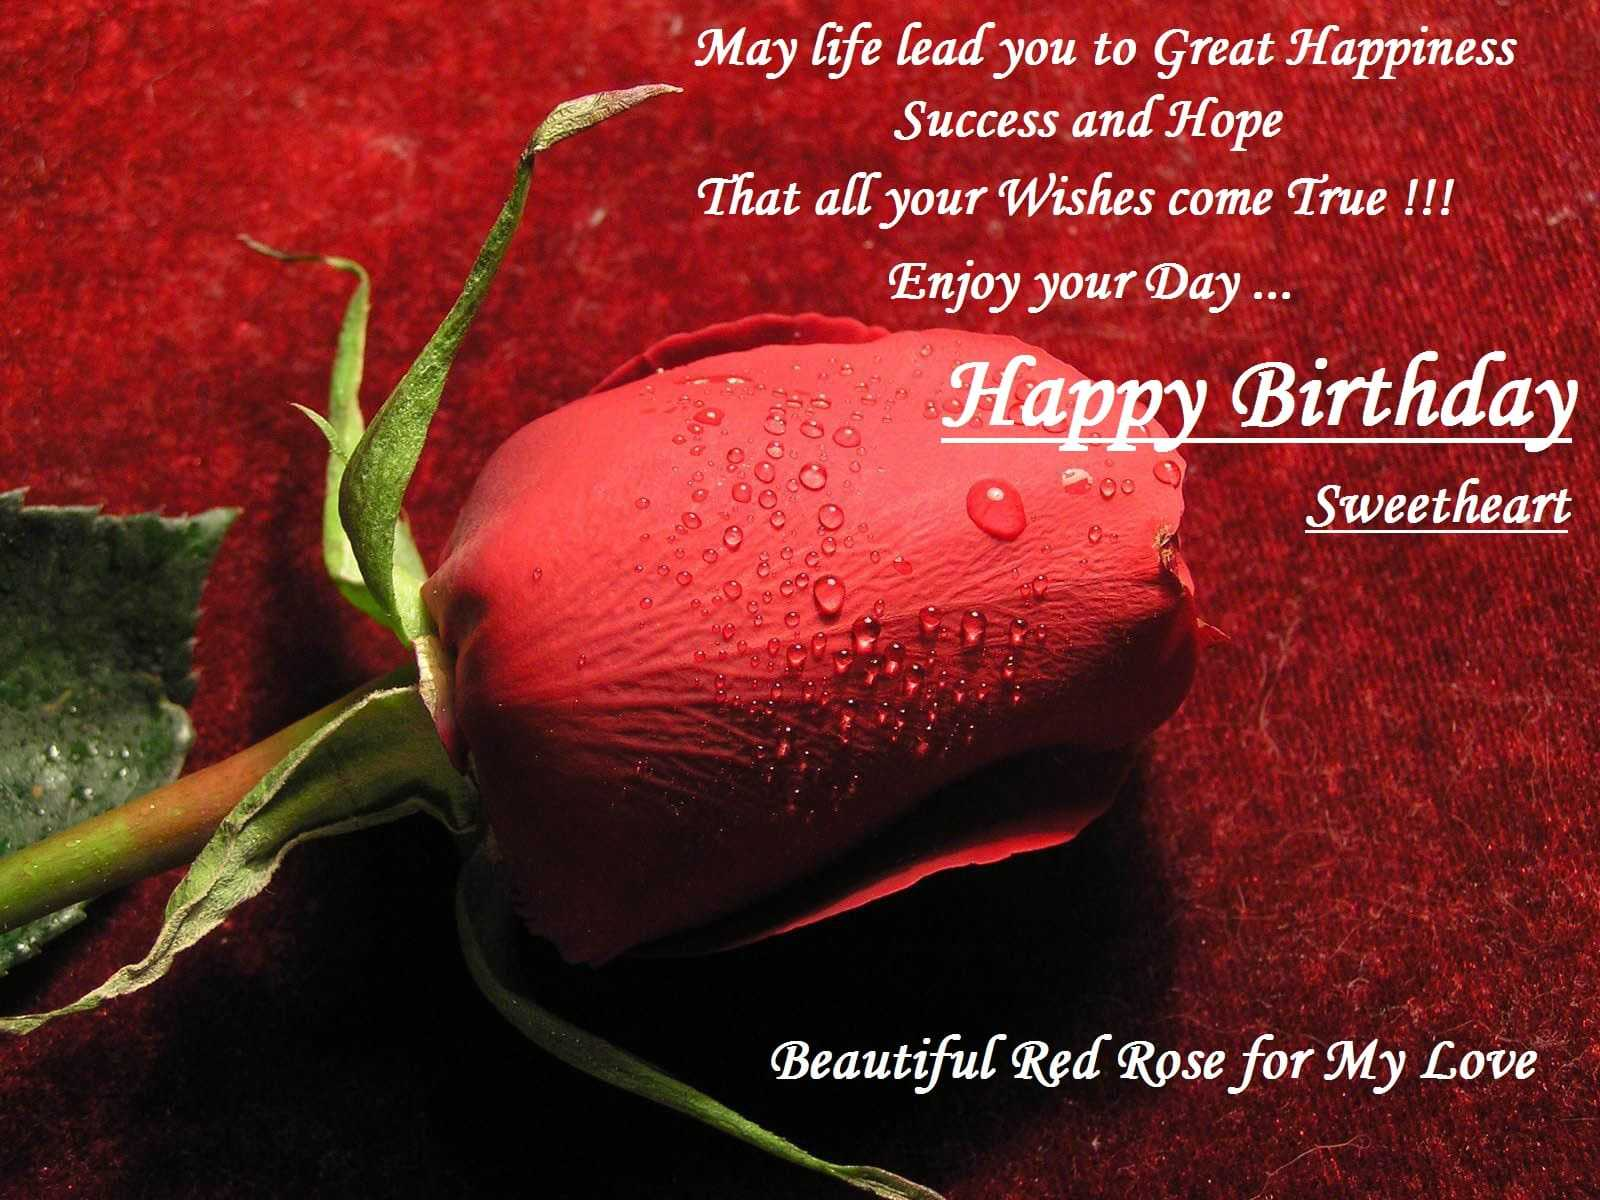 Birthday greetings for wife abroad from husband in english free birthday greetings for wife free download m4hsunfo